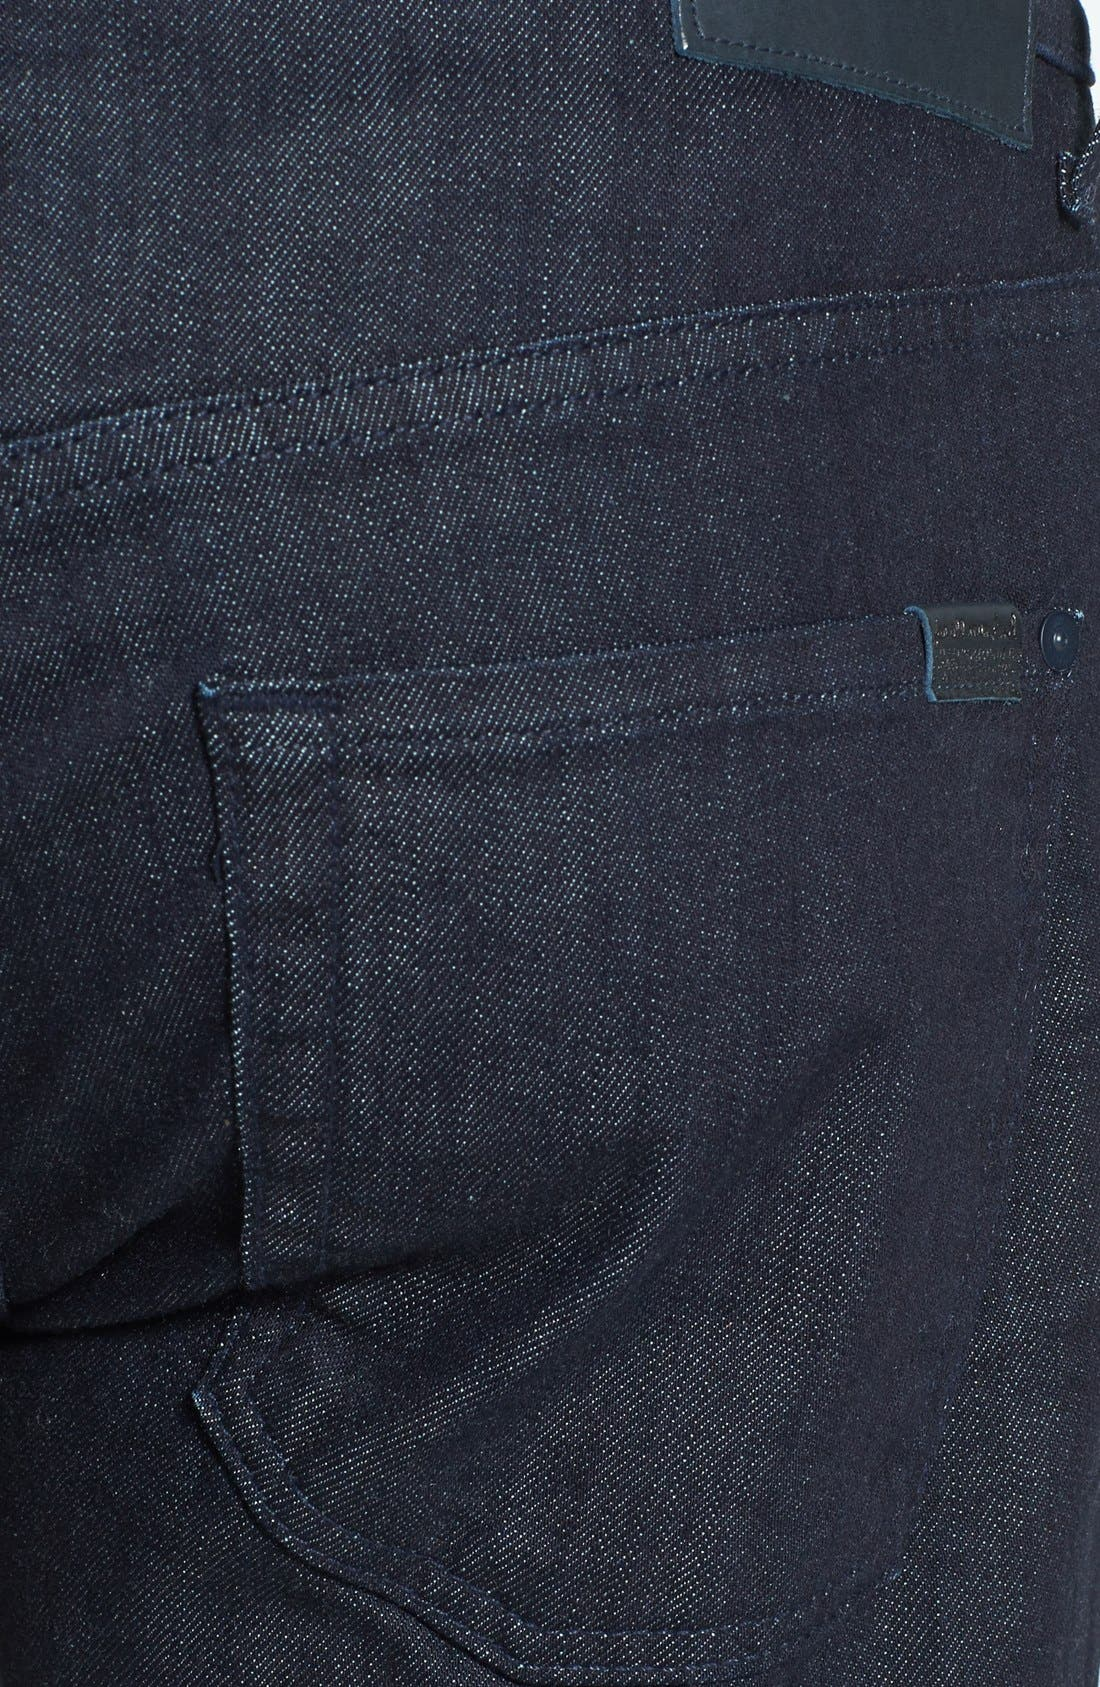 7 FOR ALL MANKIND<SUP>®</SUP>, The Straight - Luxe Performance Slim Straight Leg Jeans, Alternate thumbnail 5, color, DEEP WELL